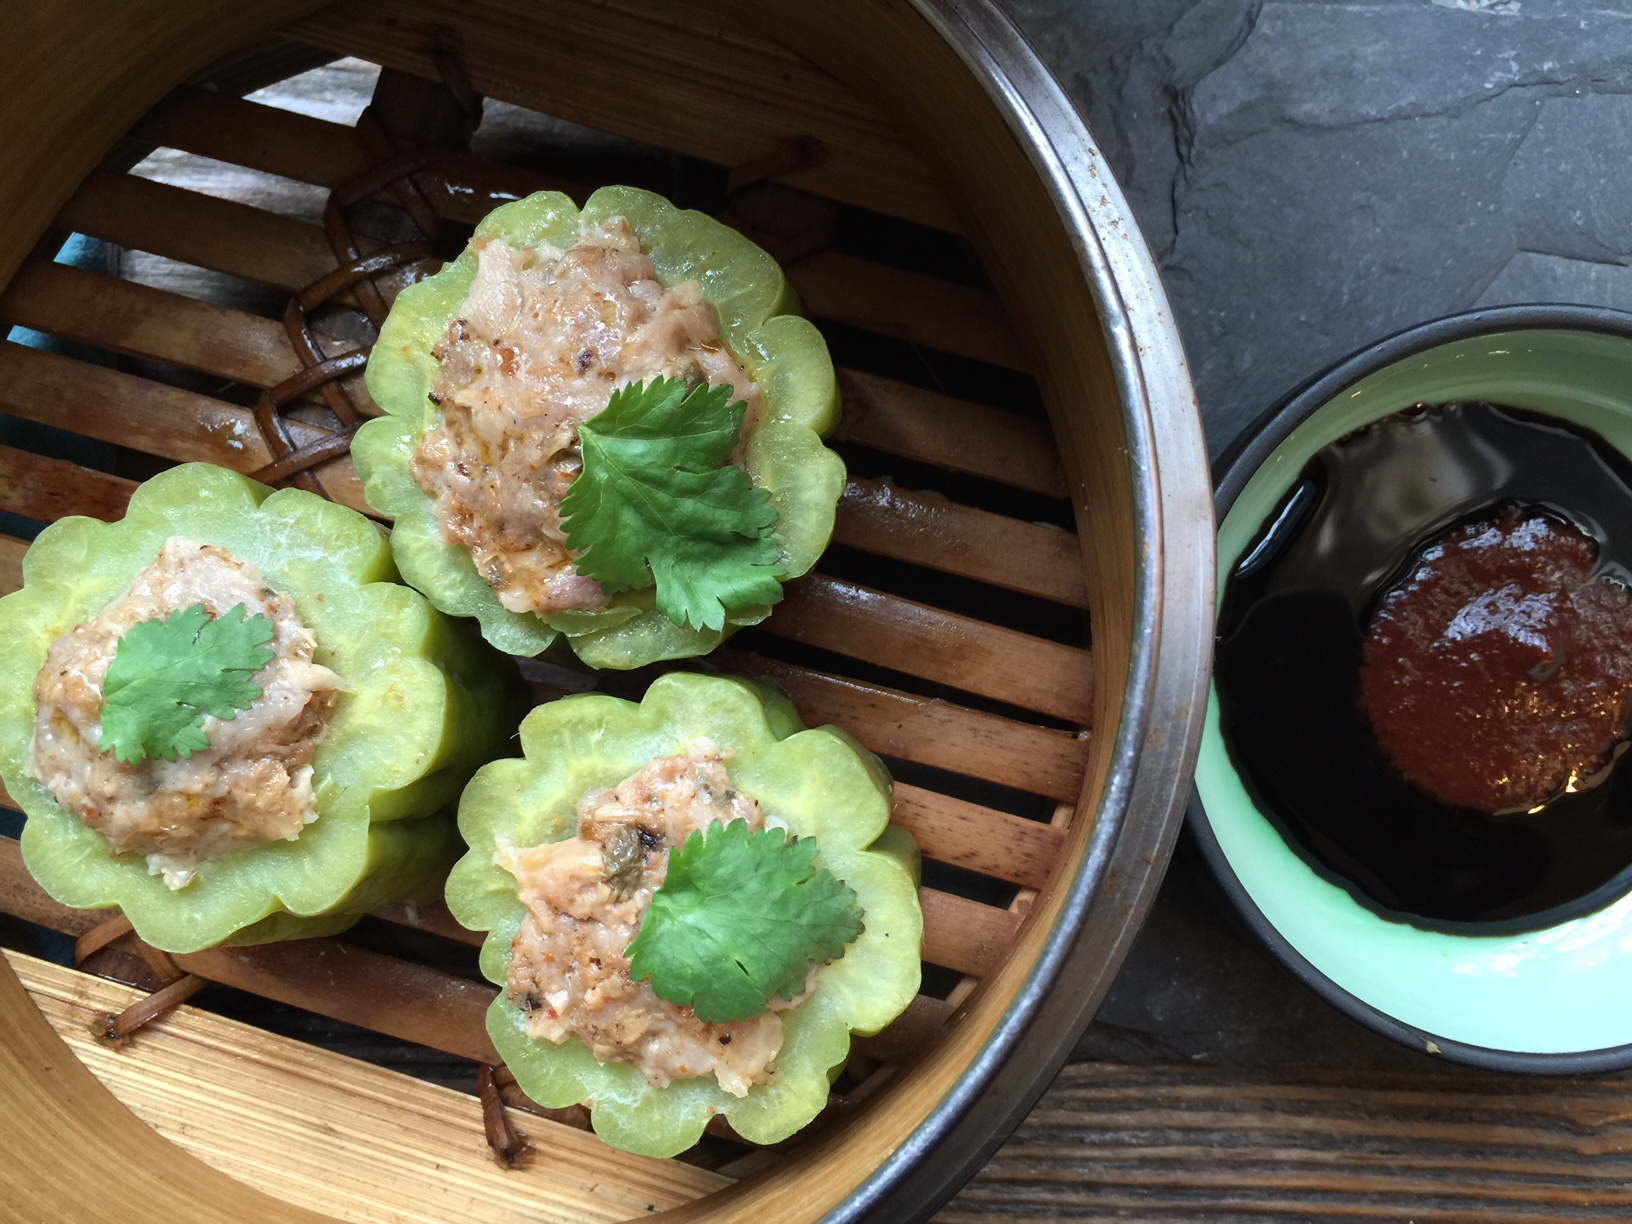 Stuffed with chopped pork and spicy lemongrass paste